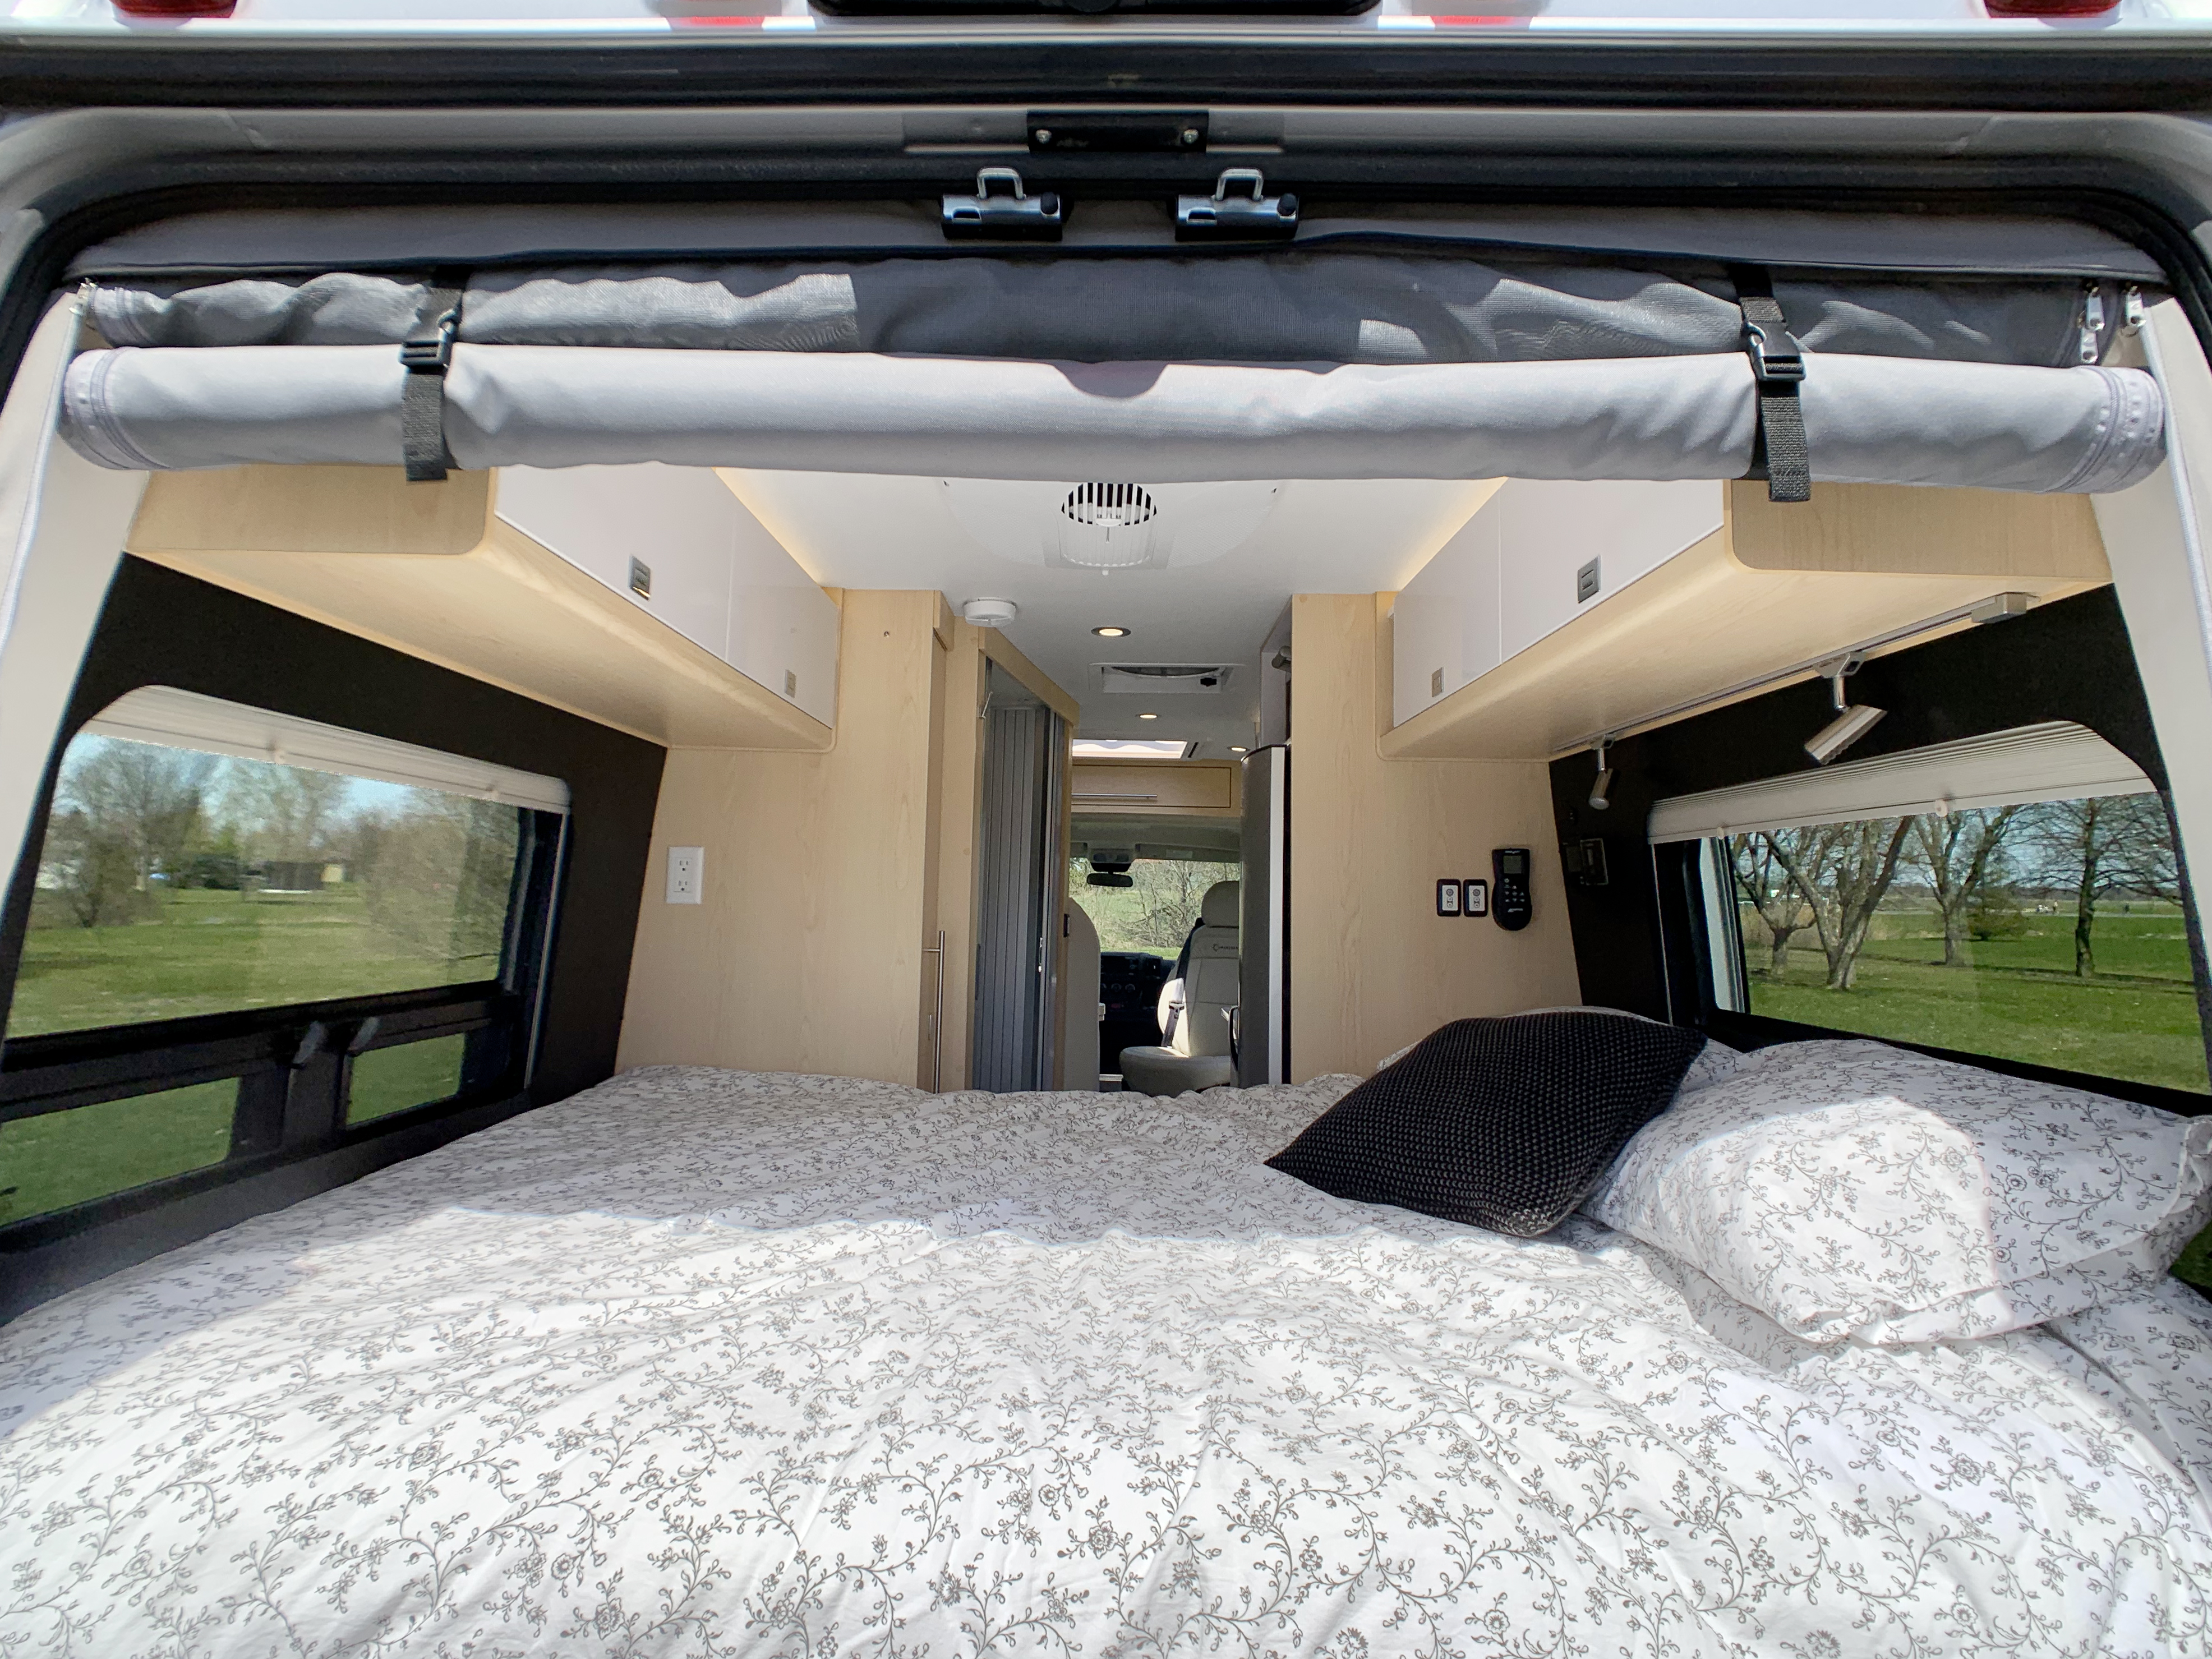 Panoramic RV - Permanent bed 1